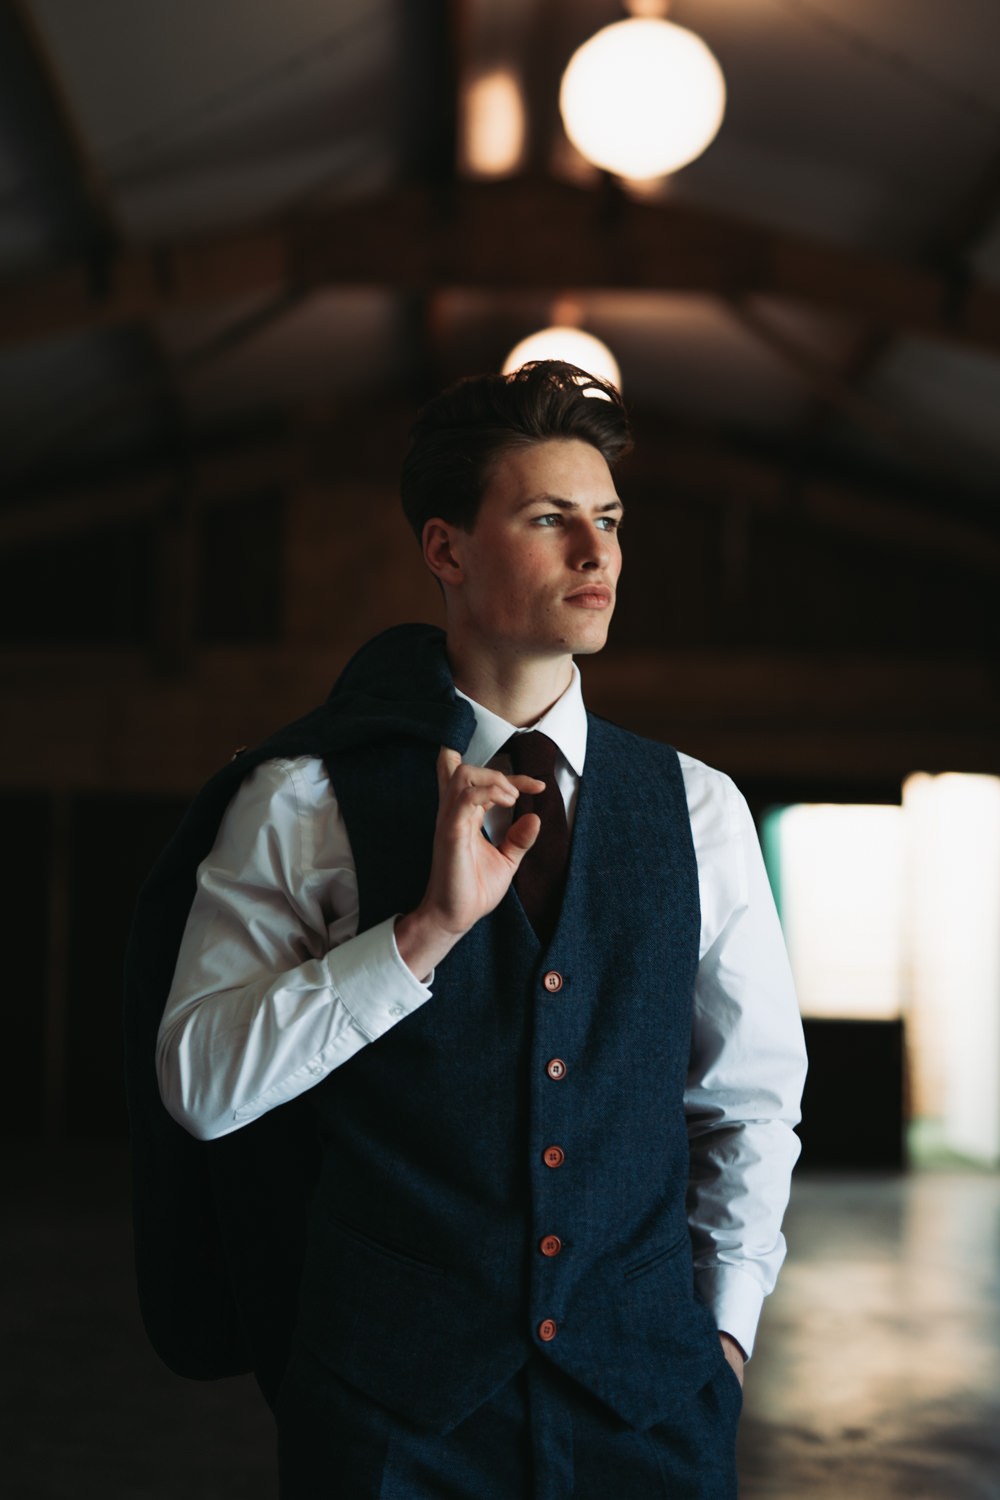 Groom Suit Style Navy Three Piece Burgundy Tie Pin Industrial Luxe Wedding Ideas Balloon Installation Ayelle Photography